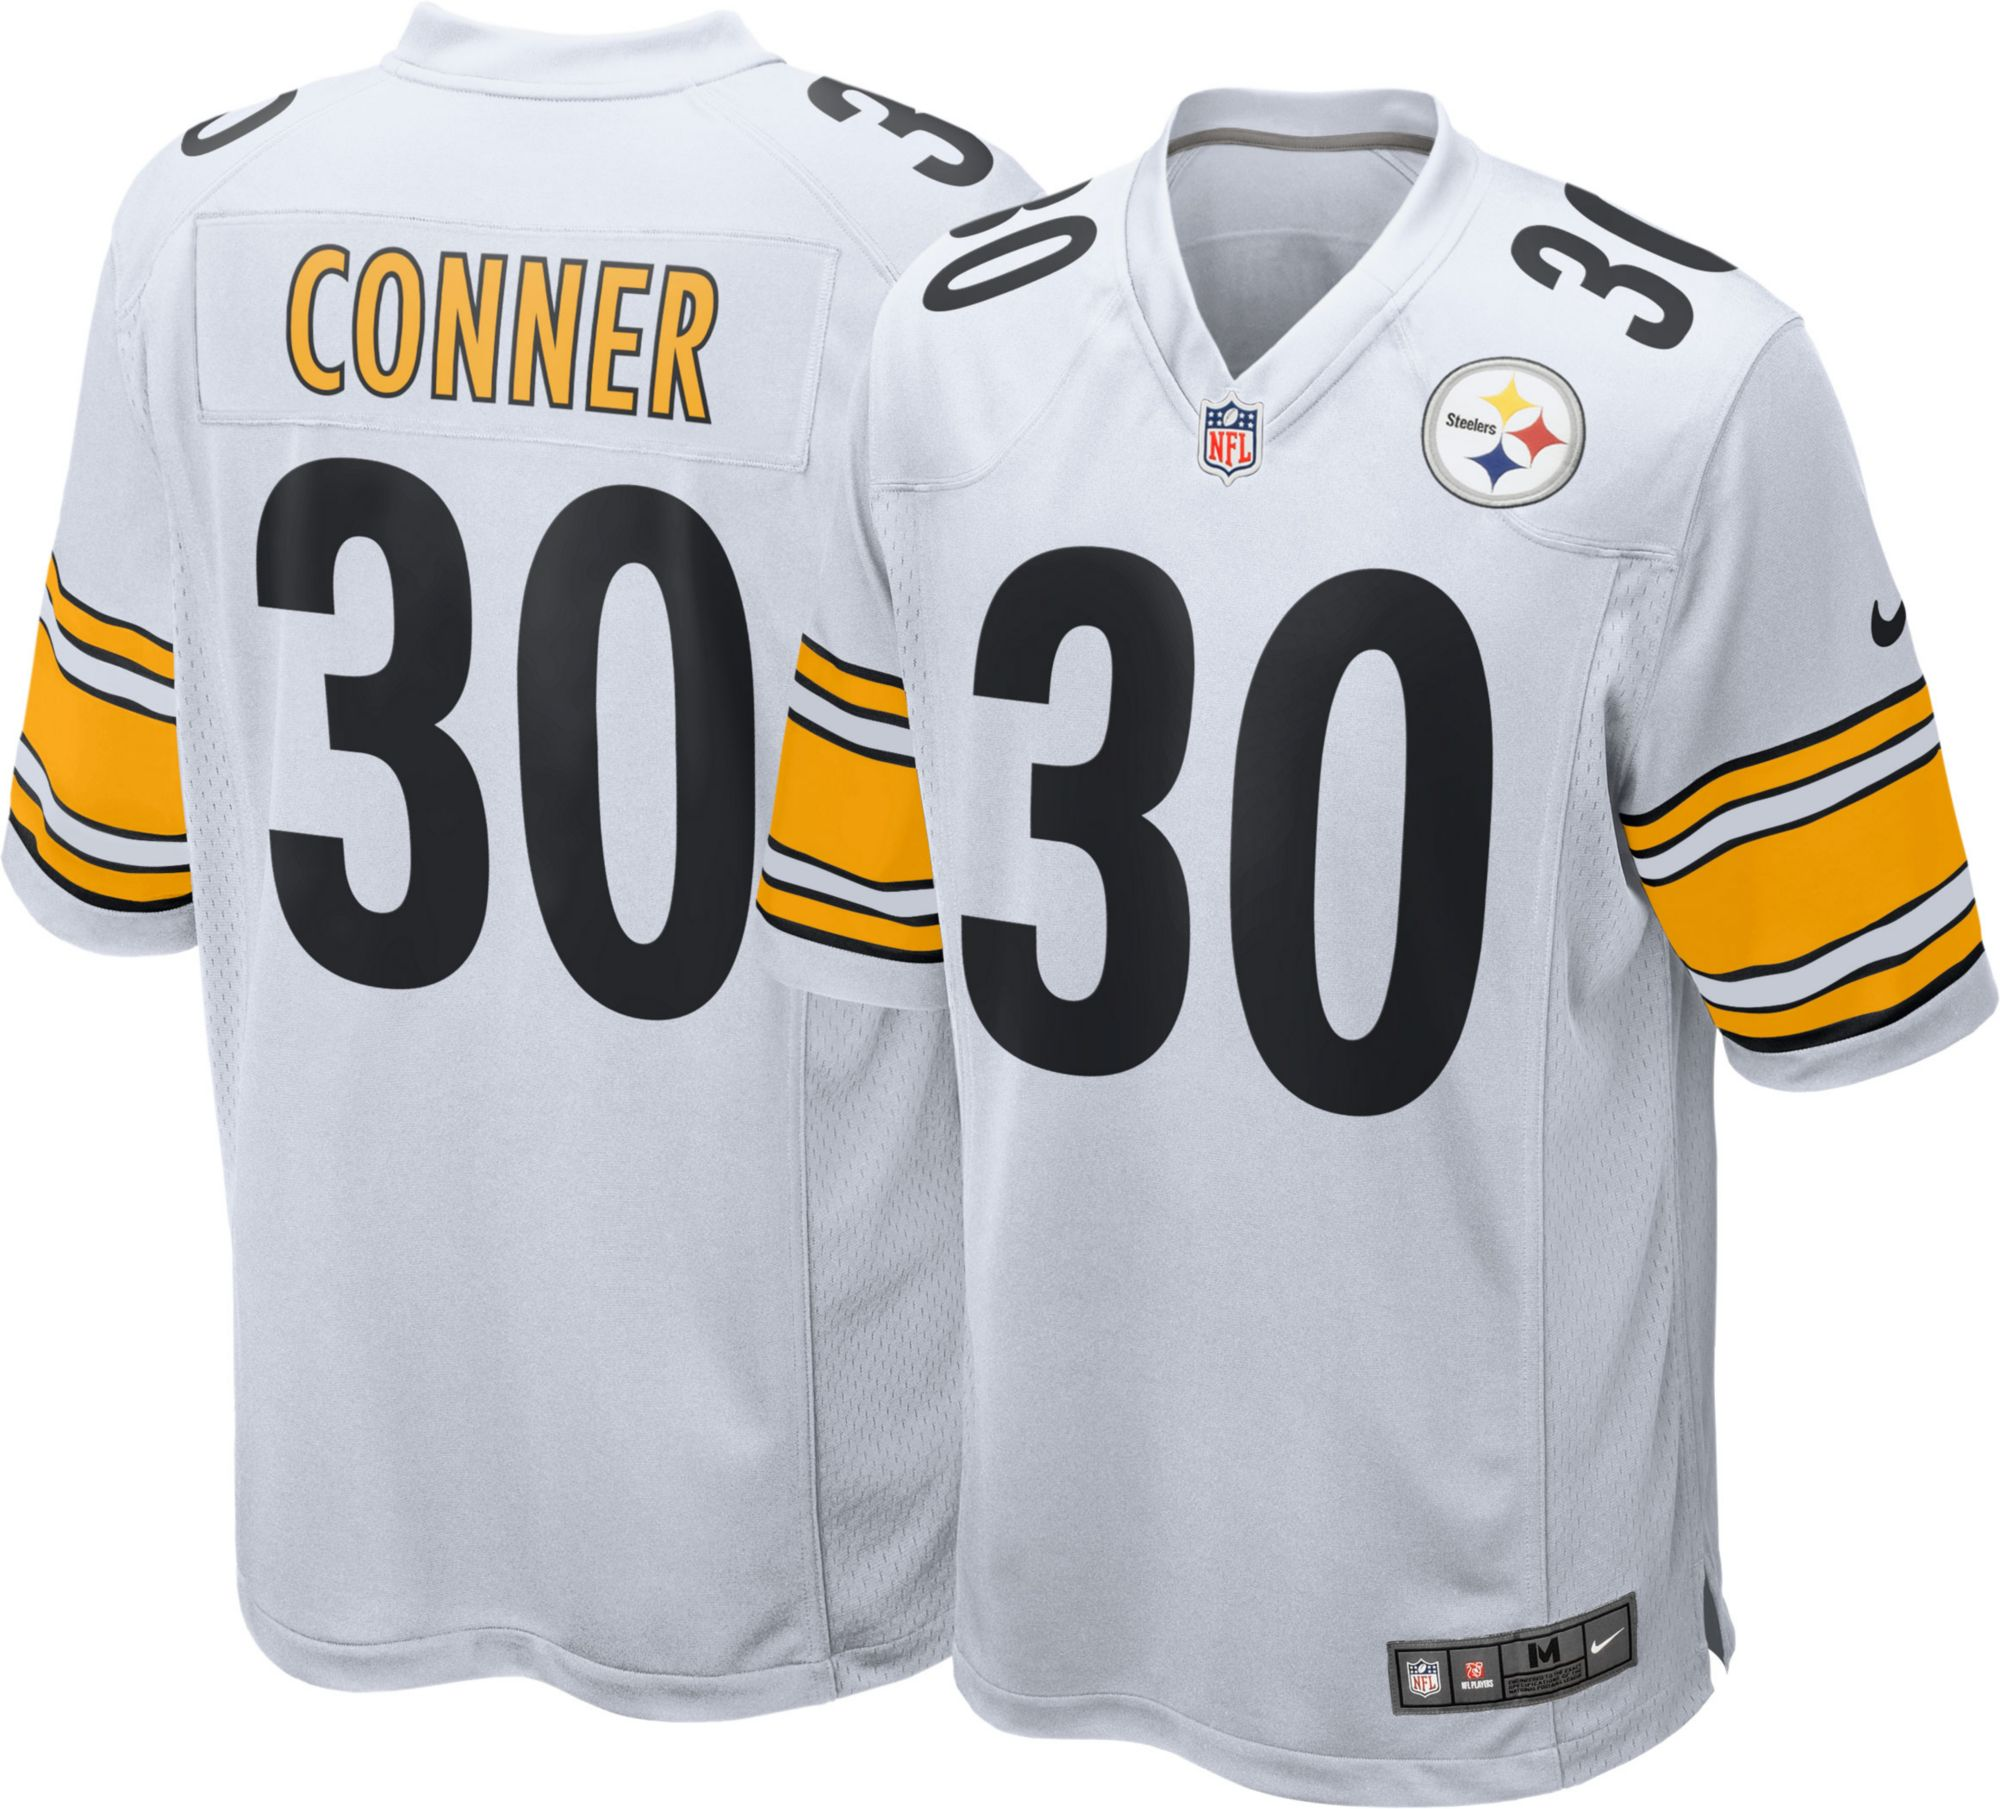 james conner signed jersey